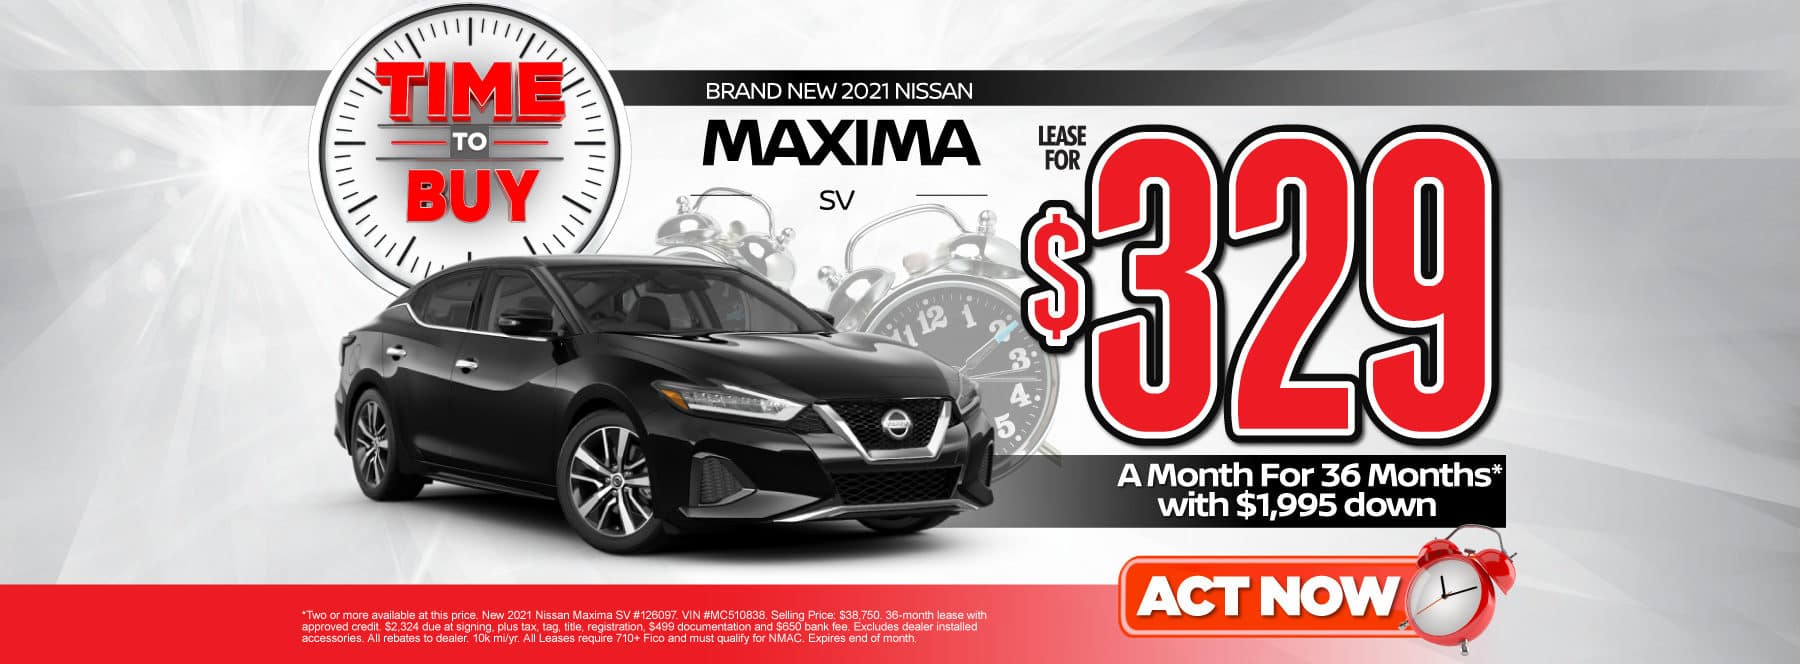 New 2021 Nissan Maxima | Lease for $329 a month | Act Now